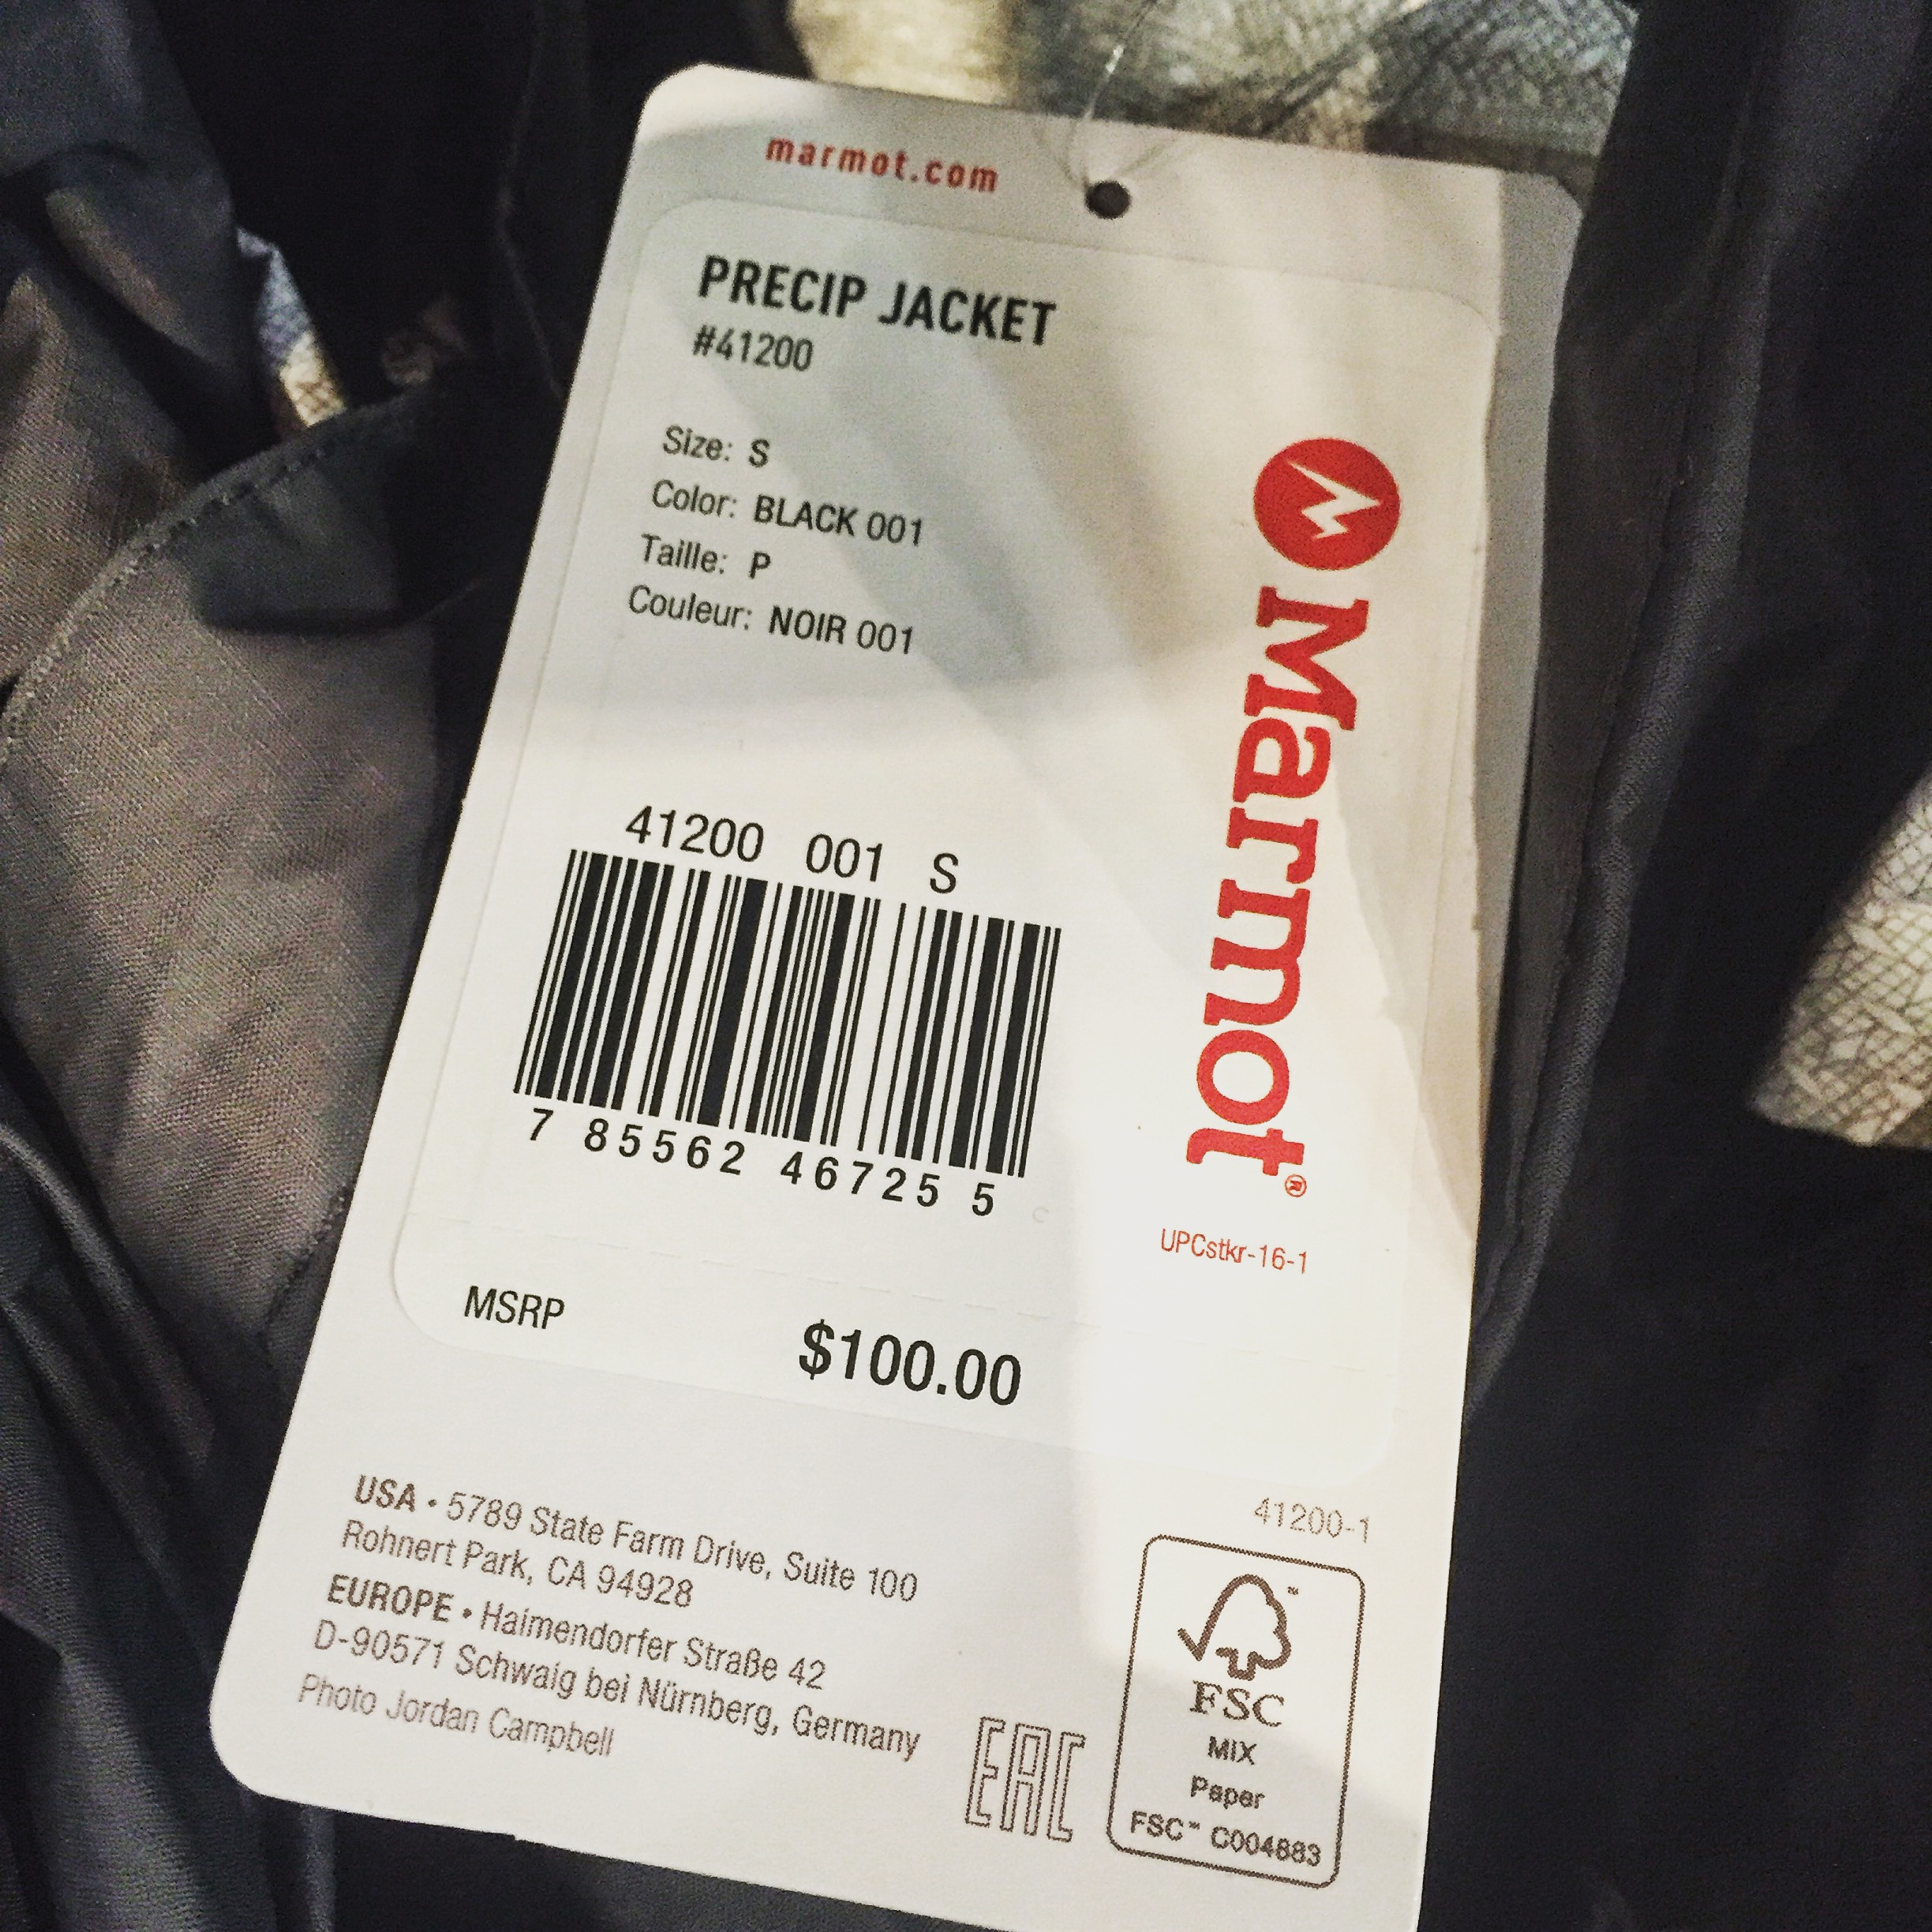 The tag on one of the jackets a customer tried on before buying.